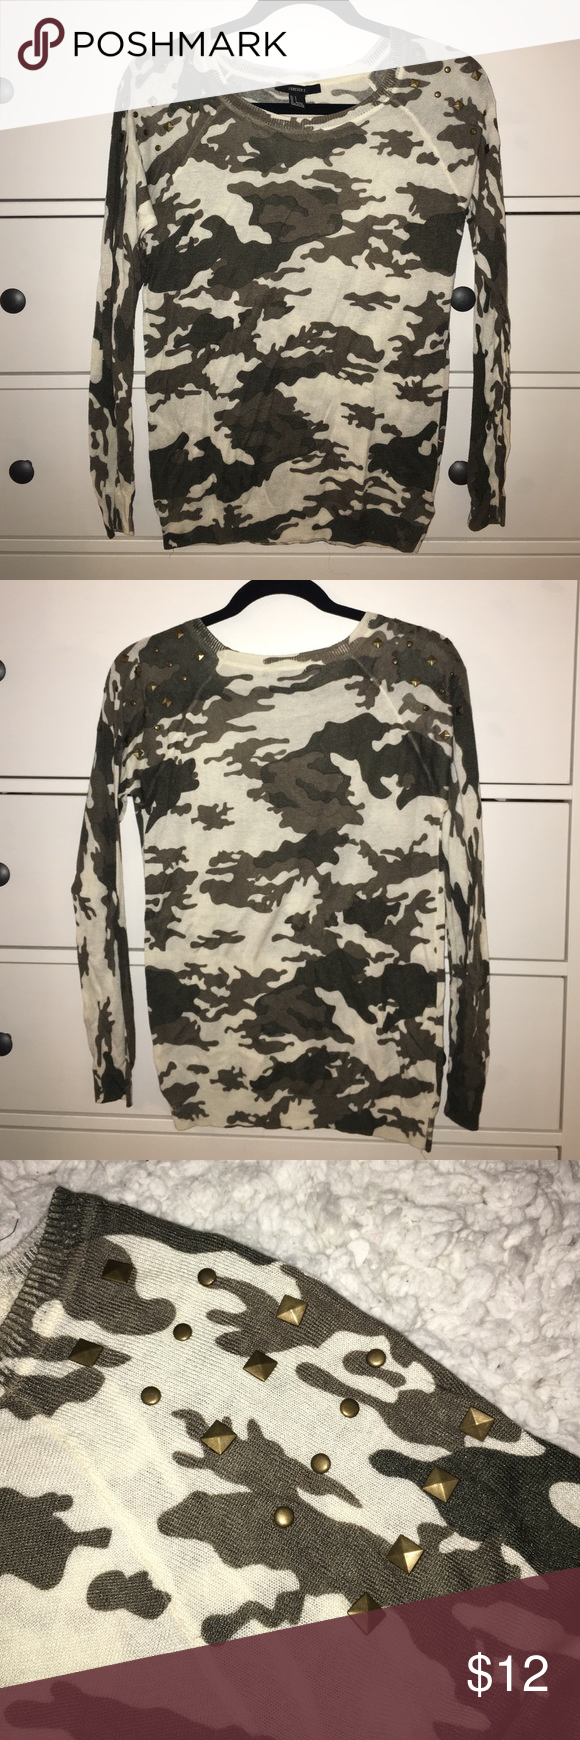 Camo print sweater Long sleeve lightweight camo print sweater with bronze metal studded shoulder details. Pairs well with some leggings or simple skinny jeans. Forever 21 Sweaters Crew & Scoop Necks